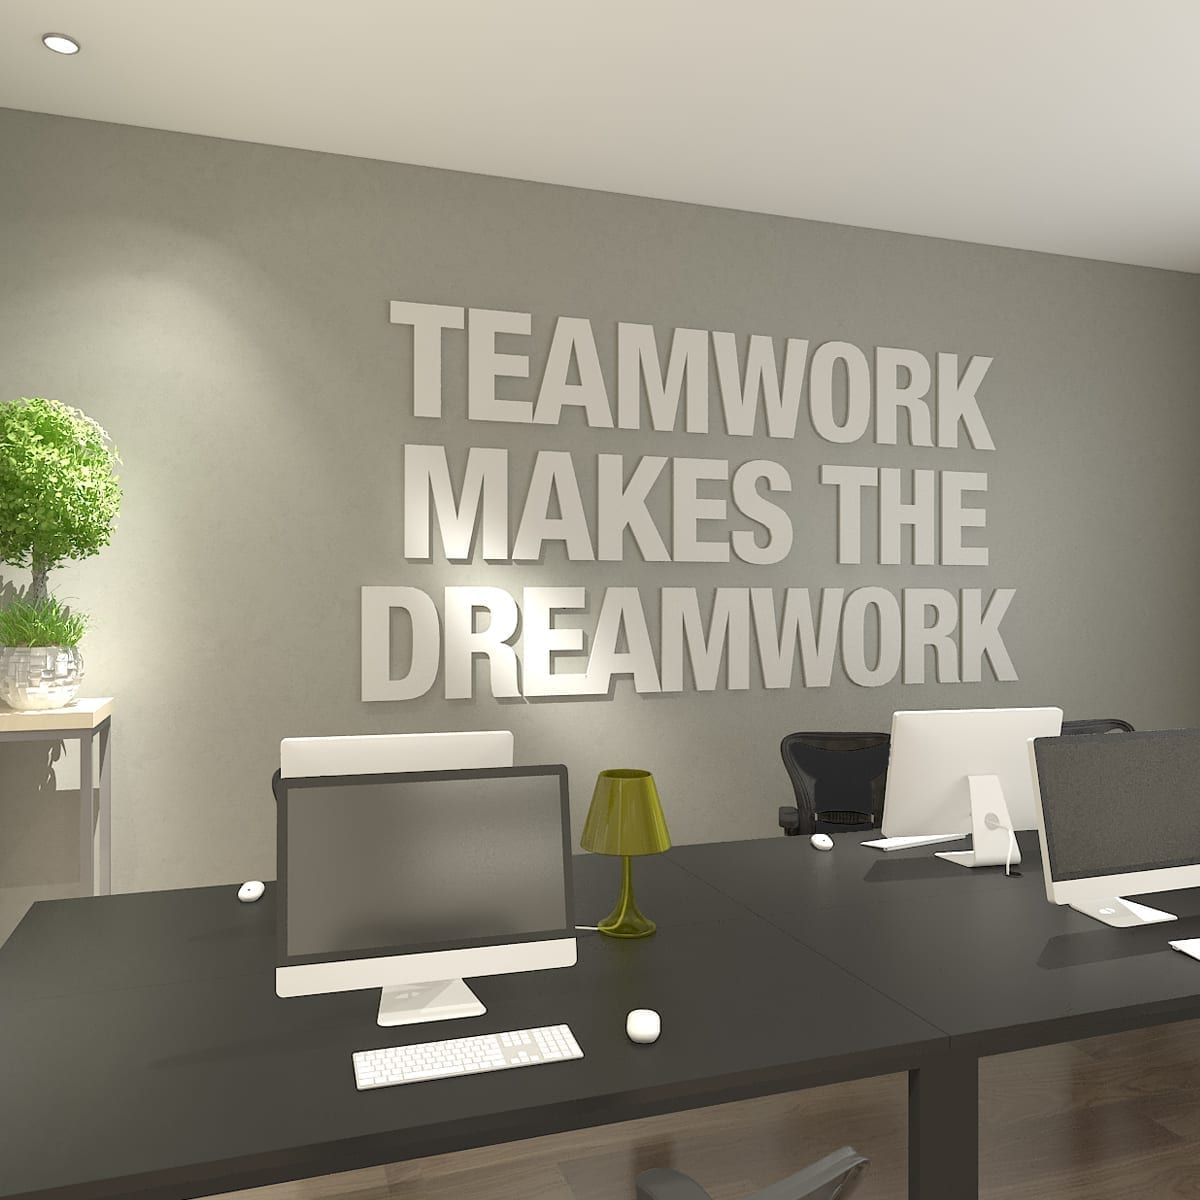 Teamwork Makes The Dreamwork 3D Deco Bureau